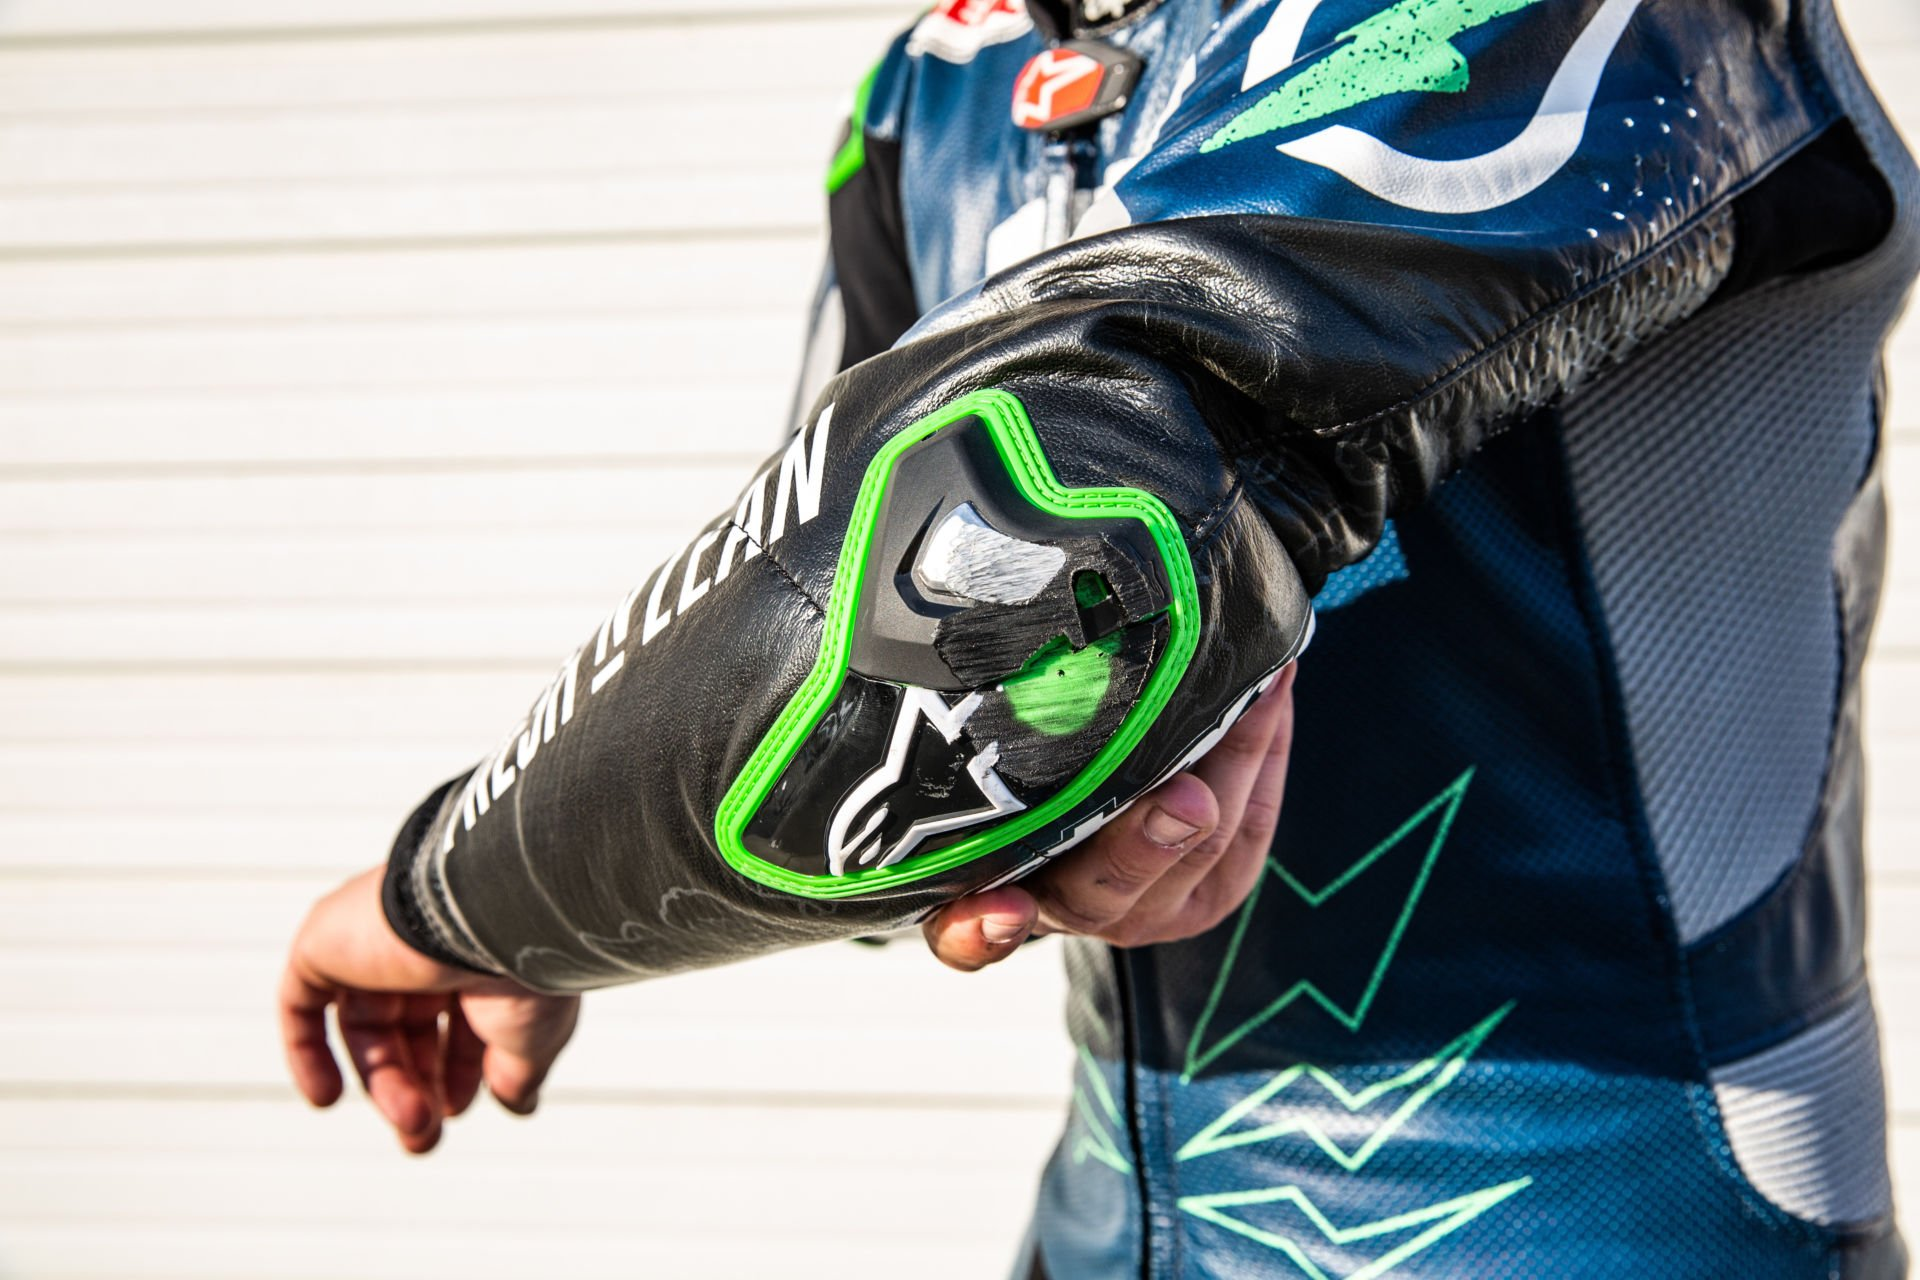 Josh Herrin's elbow slider after he established a new Guinness World Record for the fastest elbow drag while riding a motorcycle. Photo courtesy Fresh n' Lean.